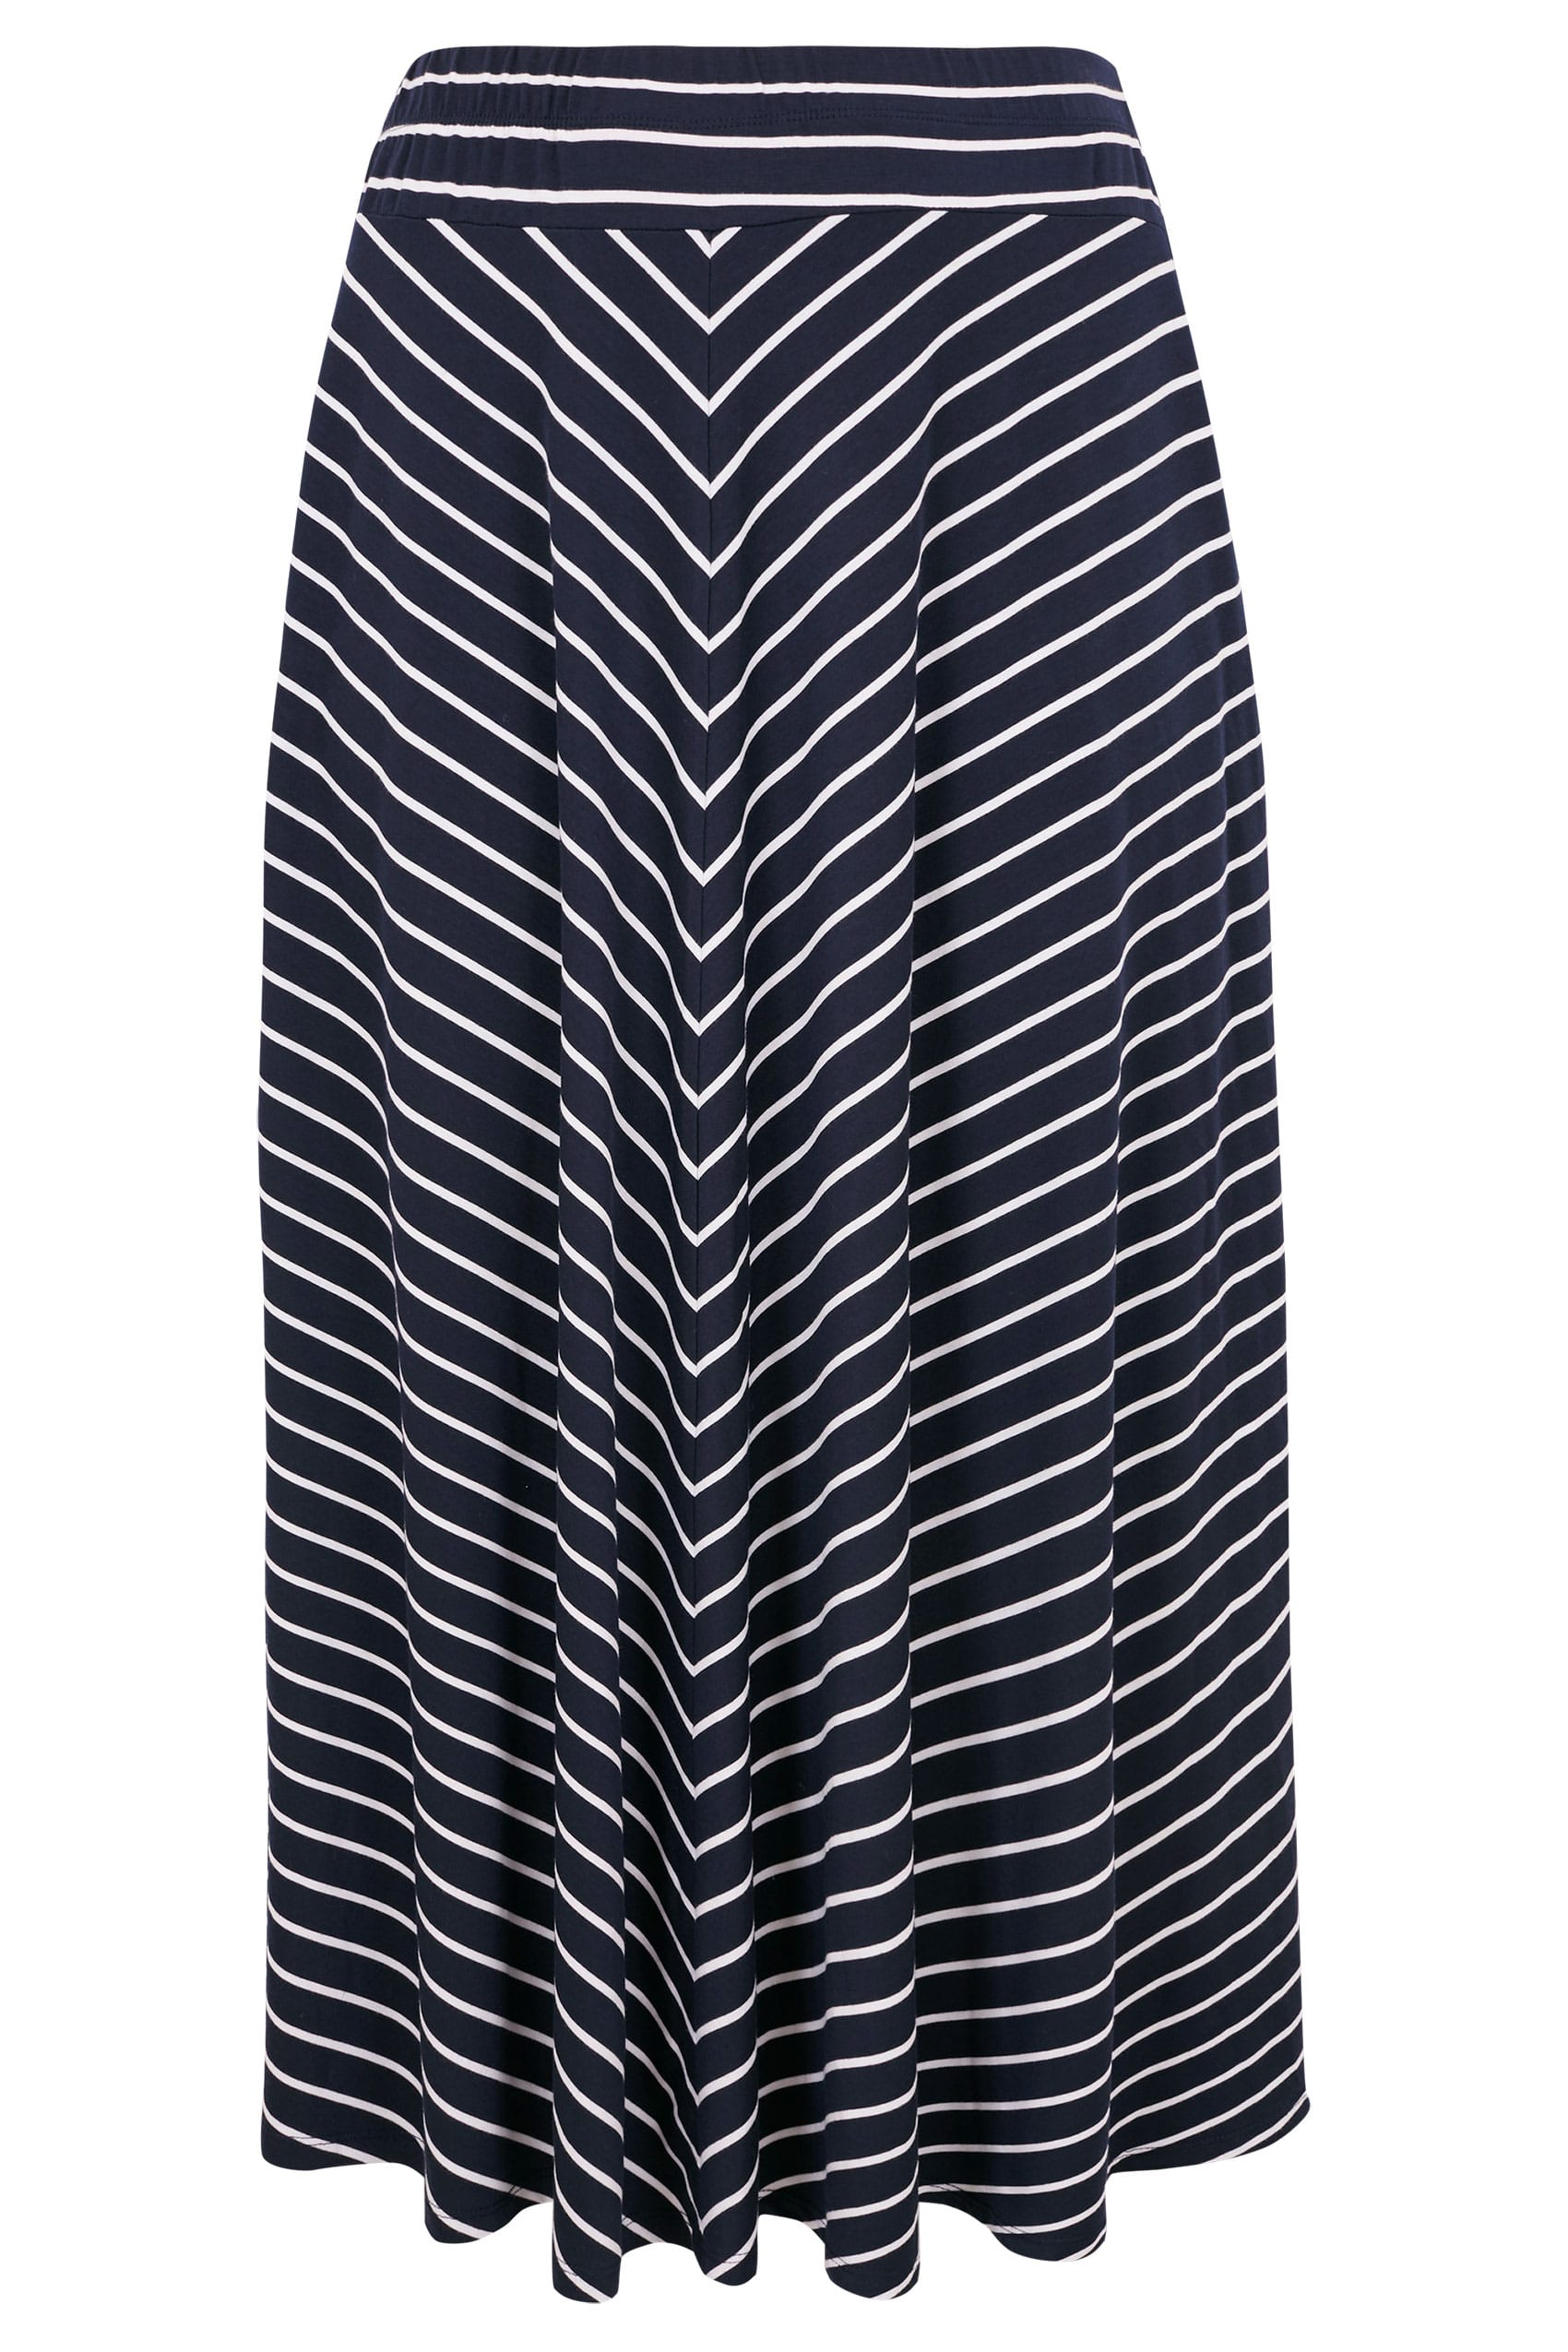 dependable performance unequal in performance matching in colour Navy & White Striped Maxi Skirt